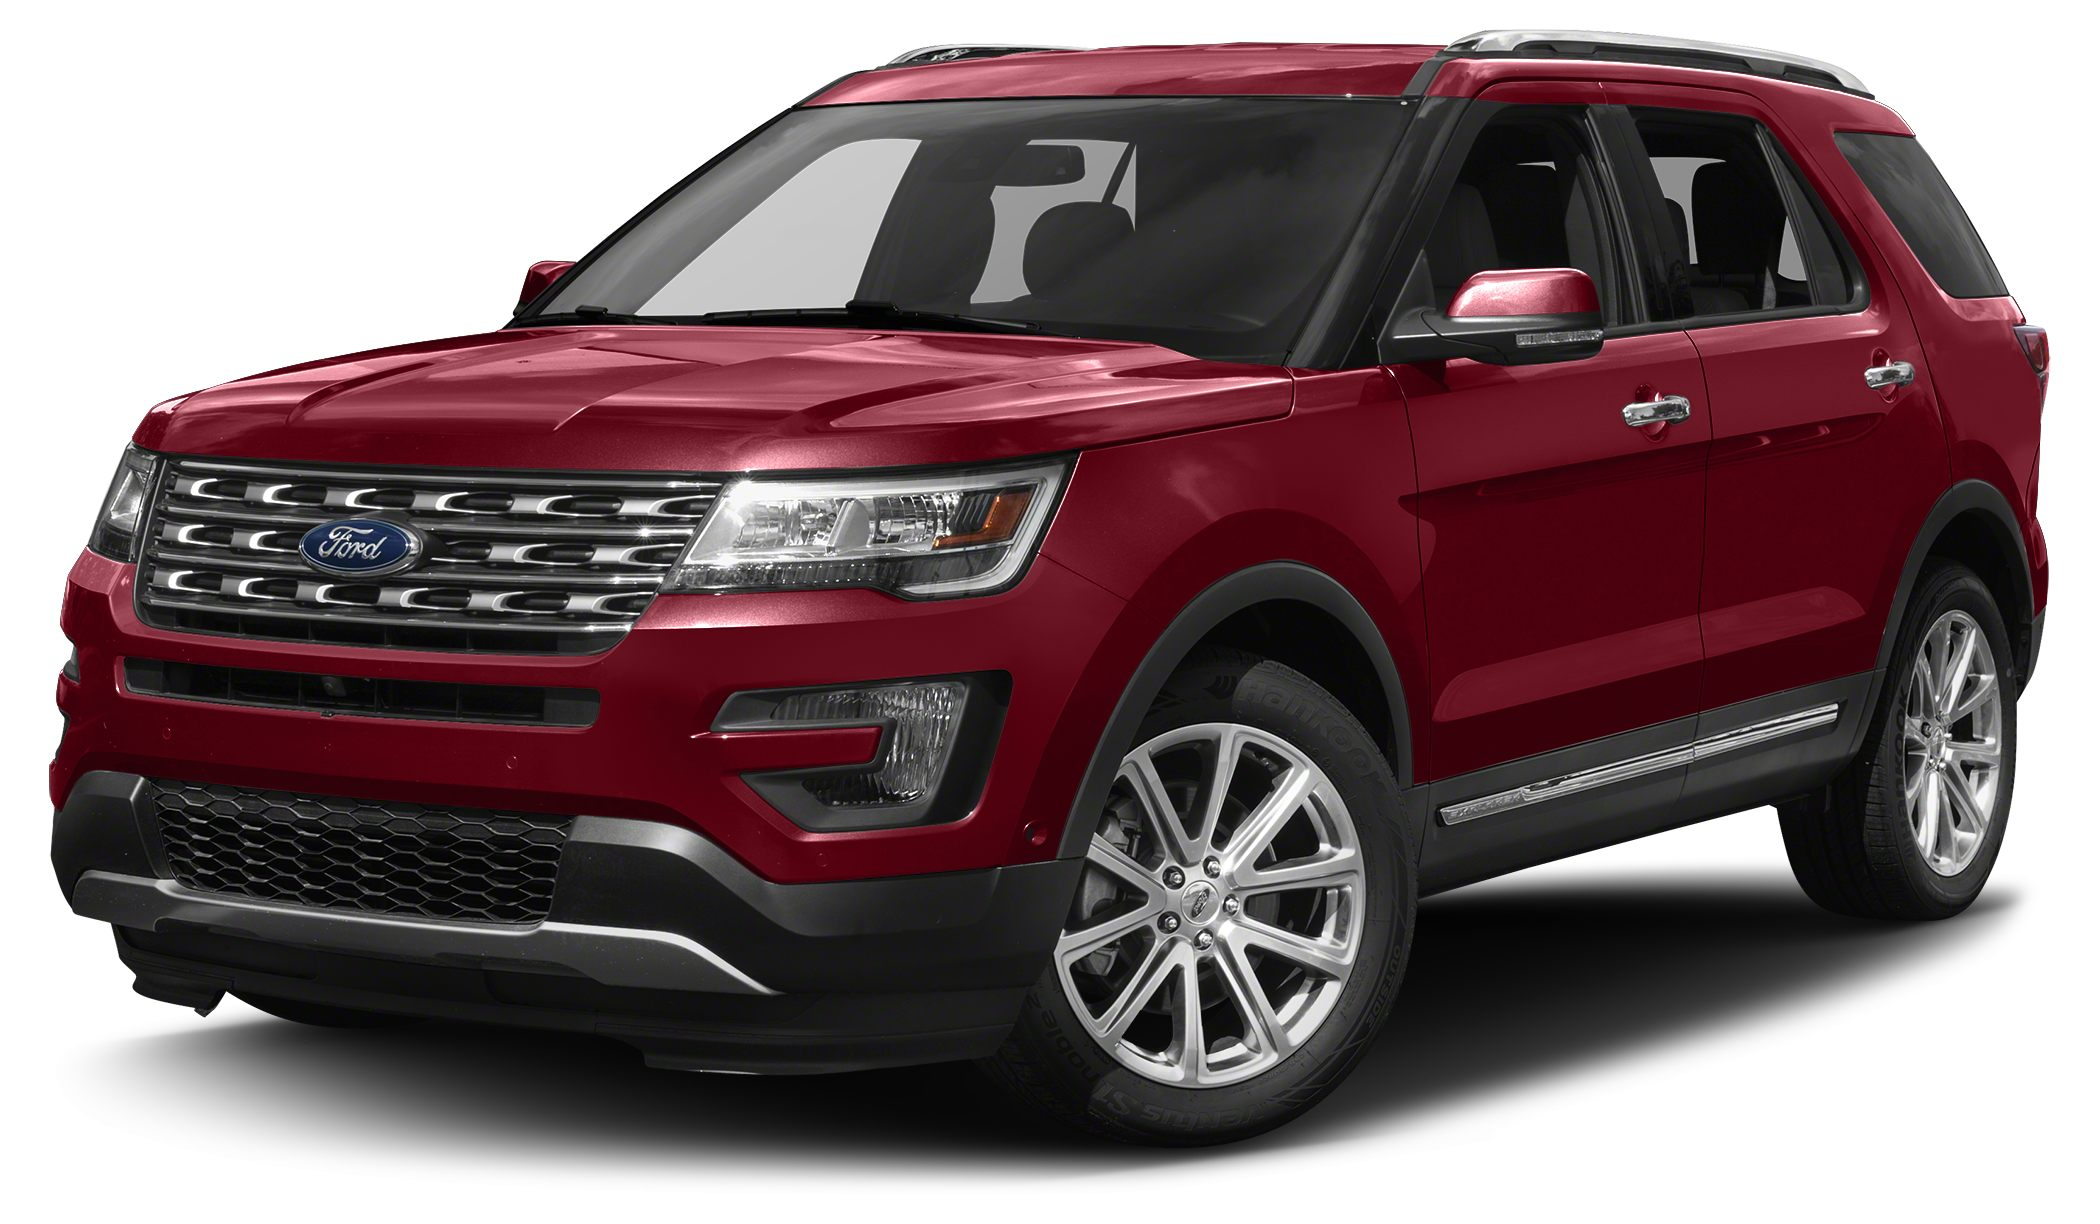 2016 Ford Explorer Limited This smooth-riding 2016 Ford Explorer Limited provides extraordinary op